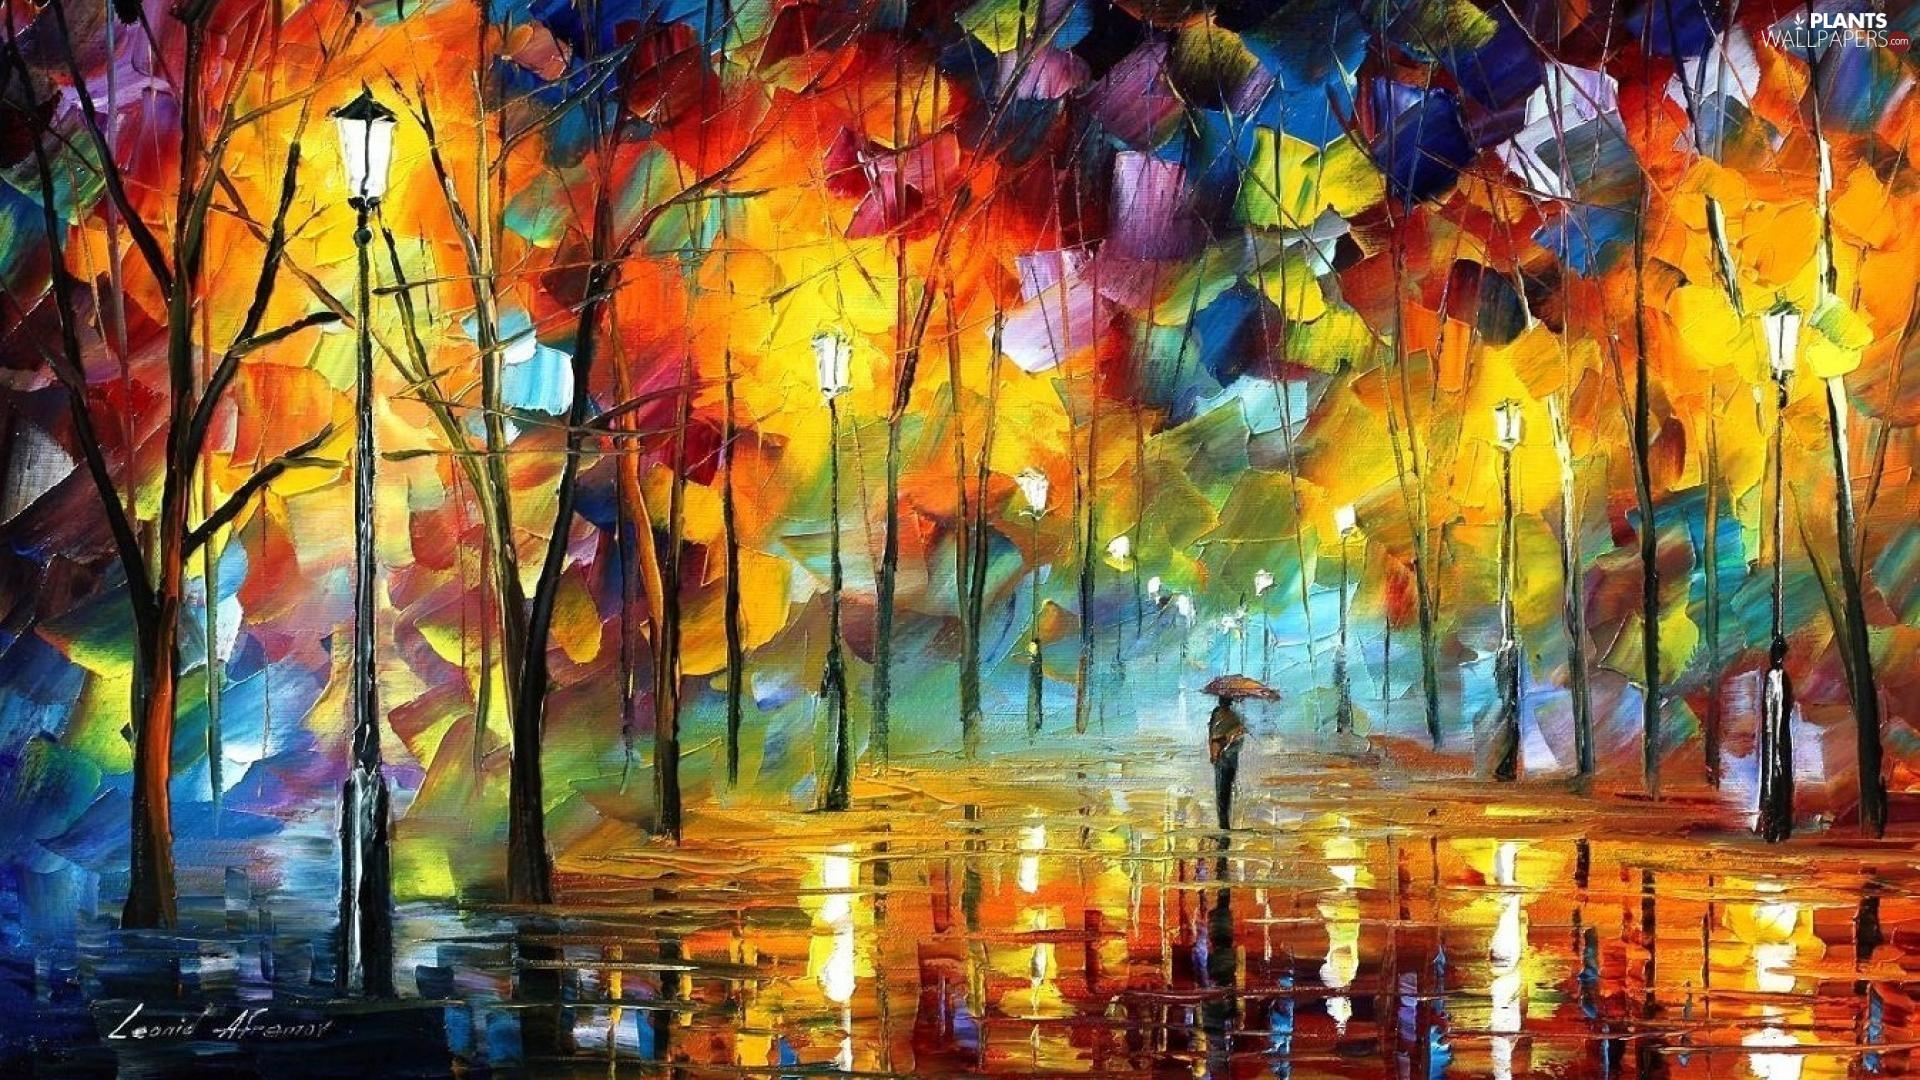 Leonid Afremov, Art Image, Rain, trees, Umbrella, autumn, alley, form, viewes